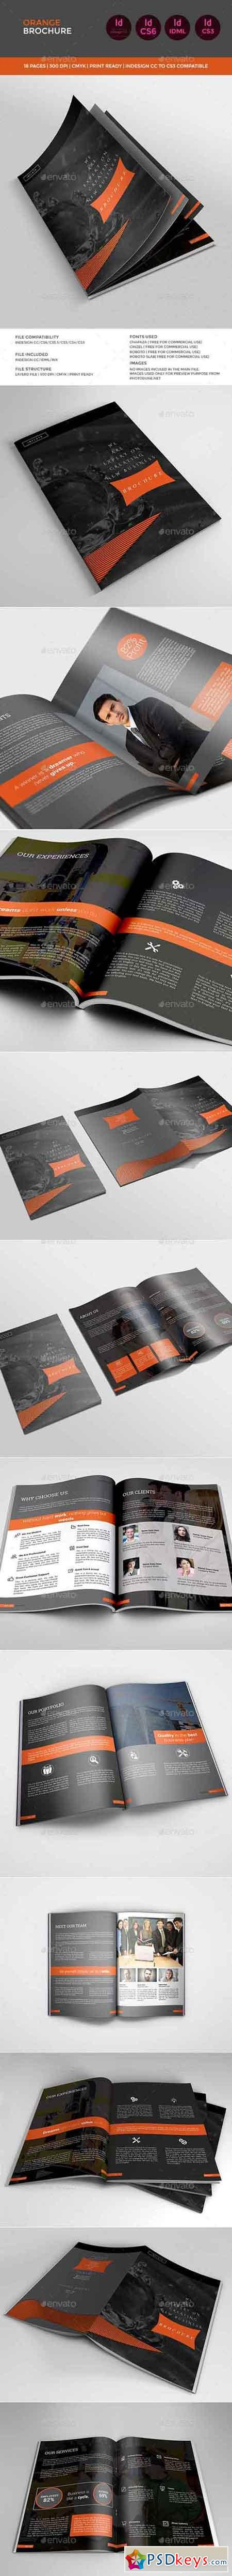 Dark Orange Brochure 11327892